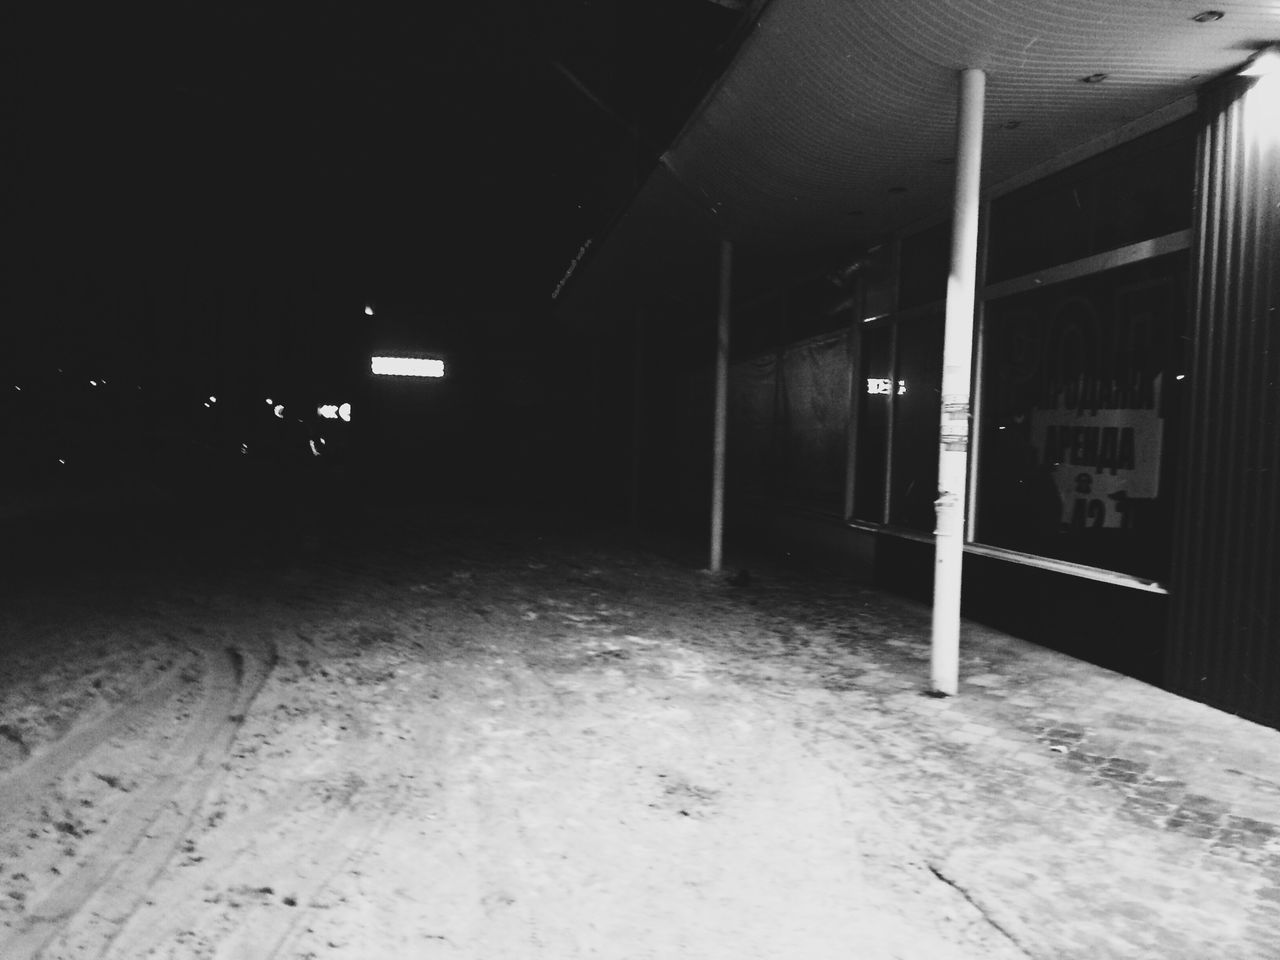 illuminated, empty, night, no people, indoors, built structure, architecture